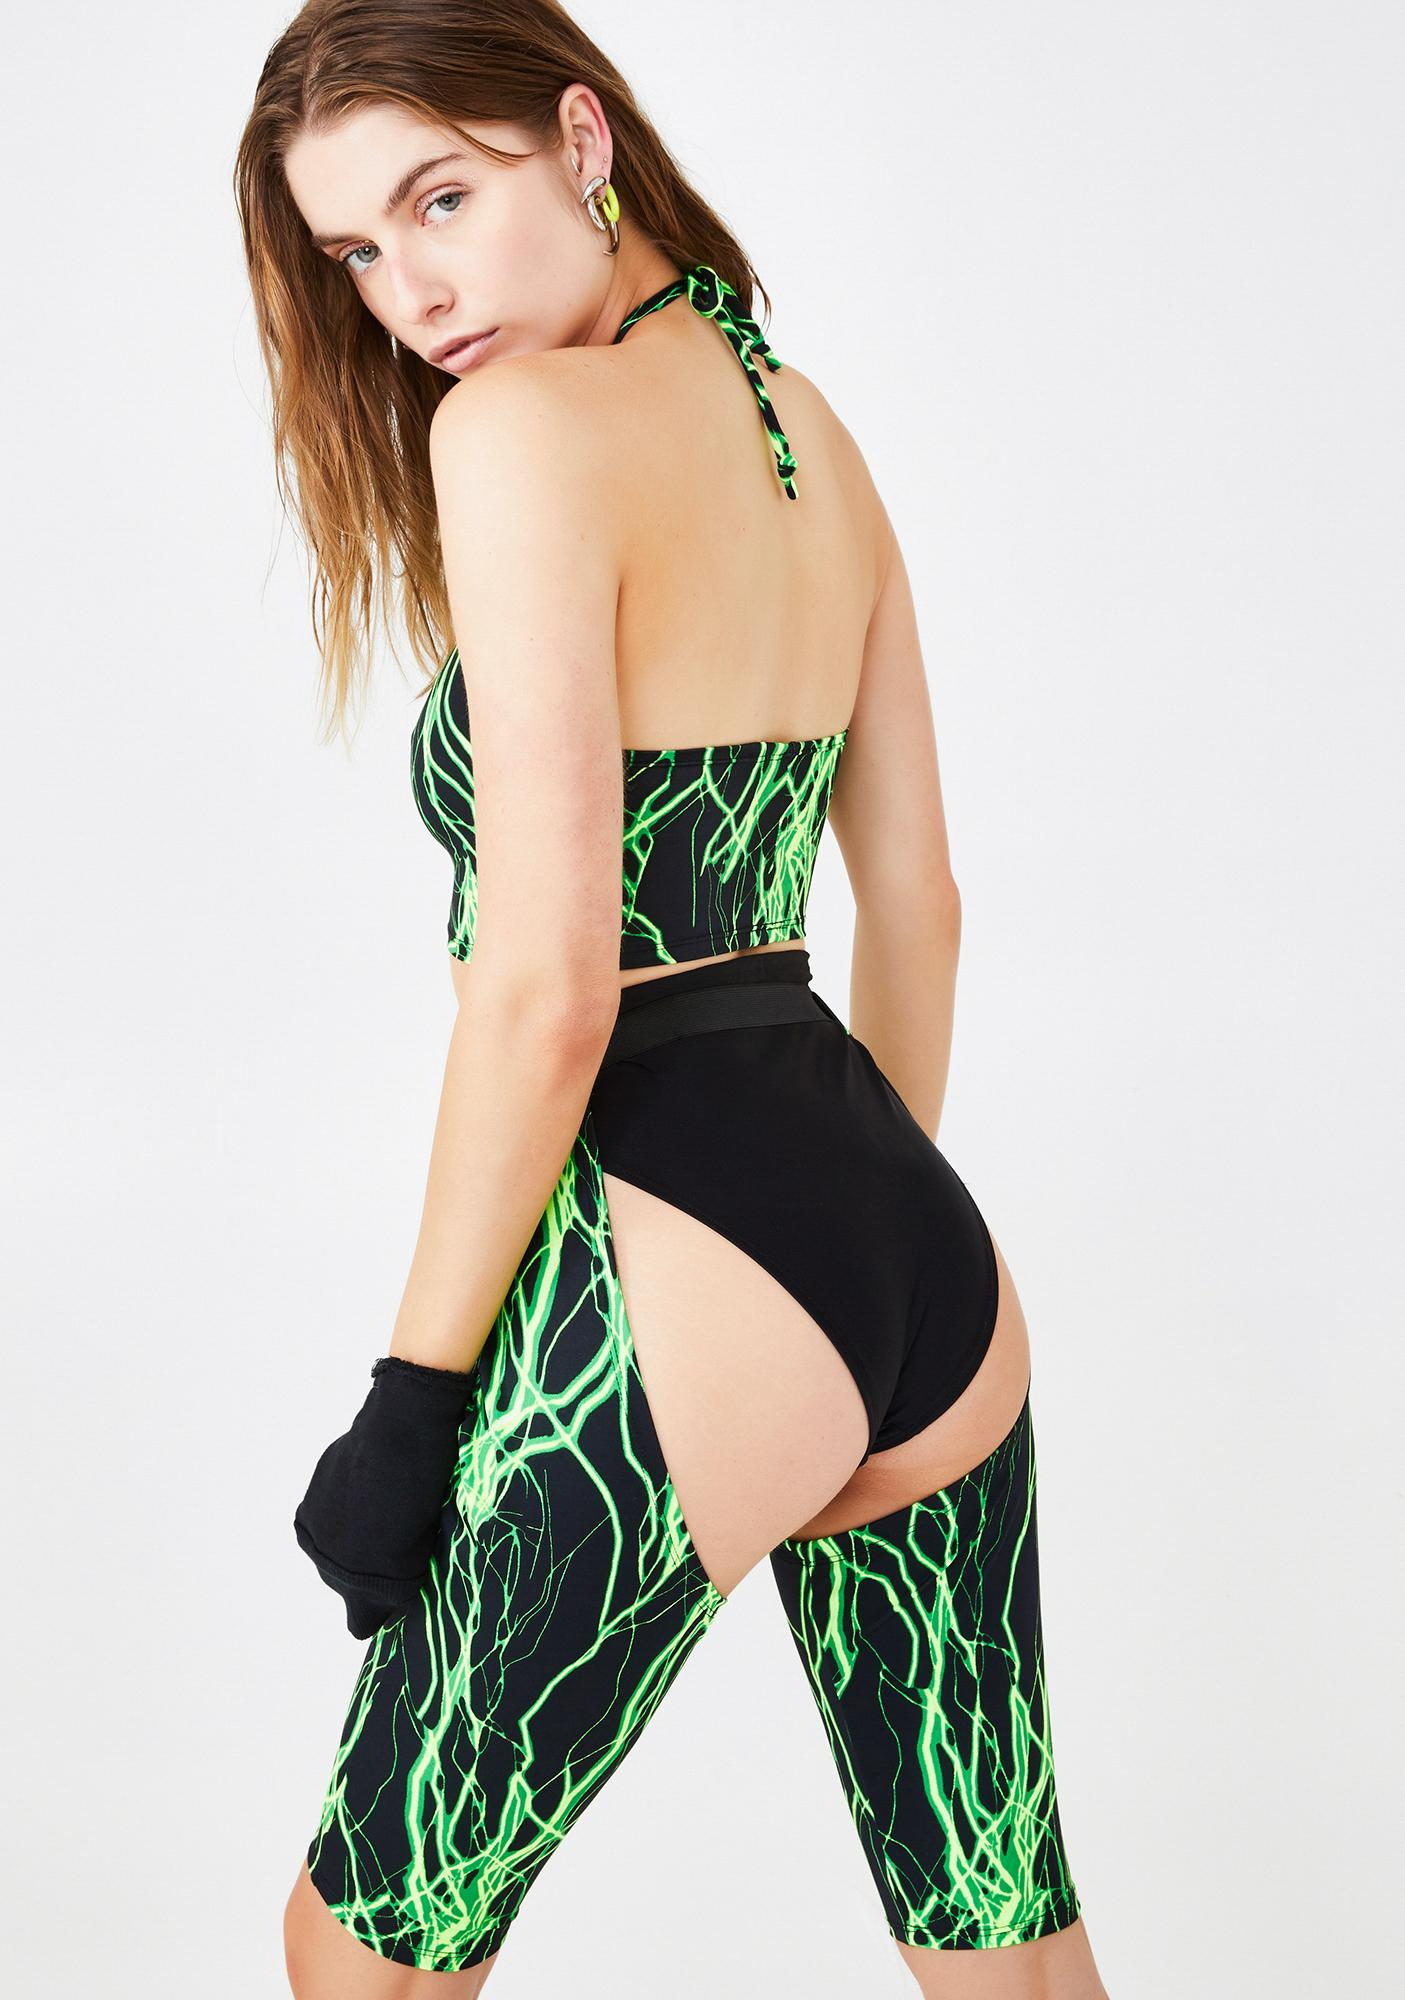 Em's The Label Lime Electric Chaps & Hot Pants Set